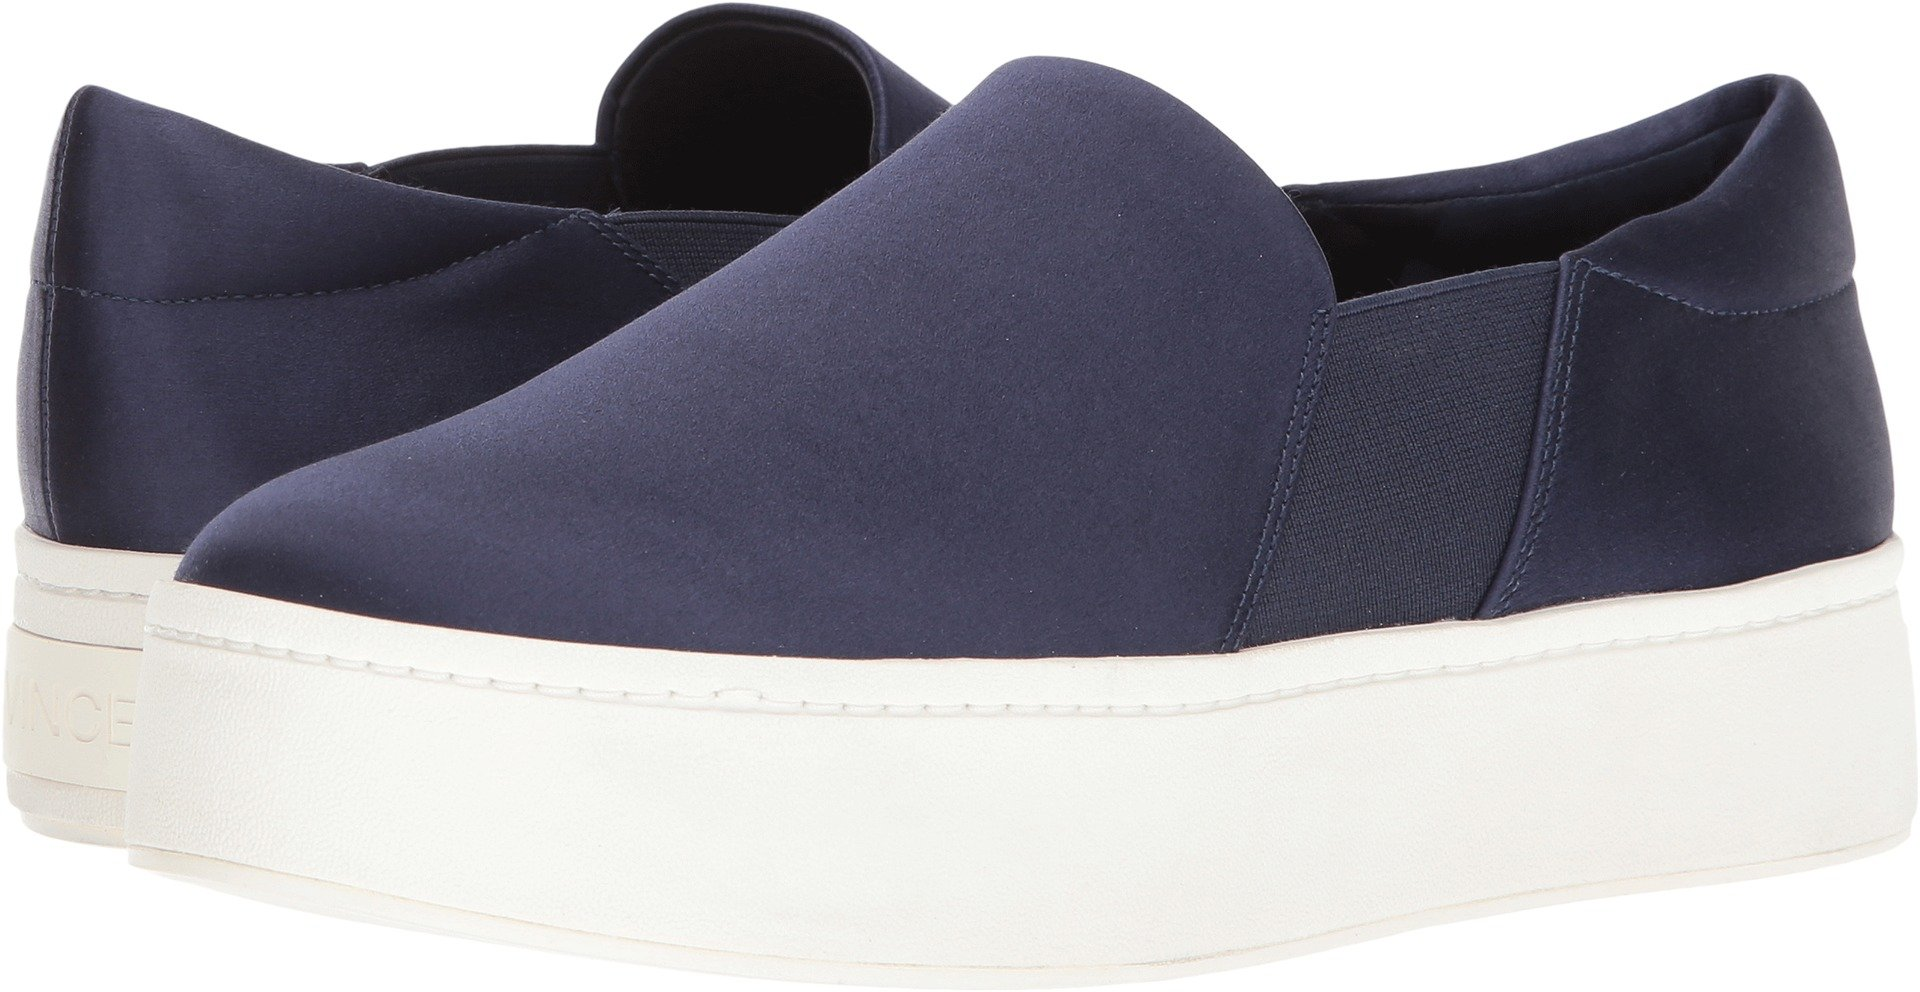 Vince Women's Warren Platform Sneakers, Navy, 7.5 B(M) US by Vince